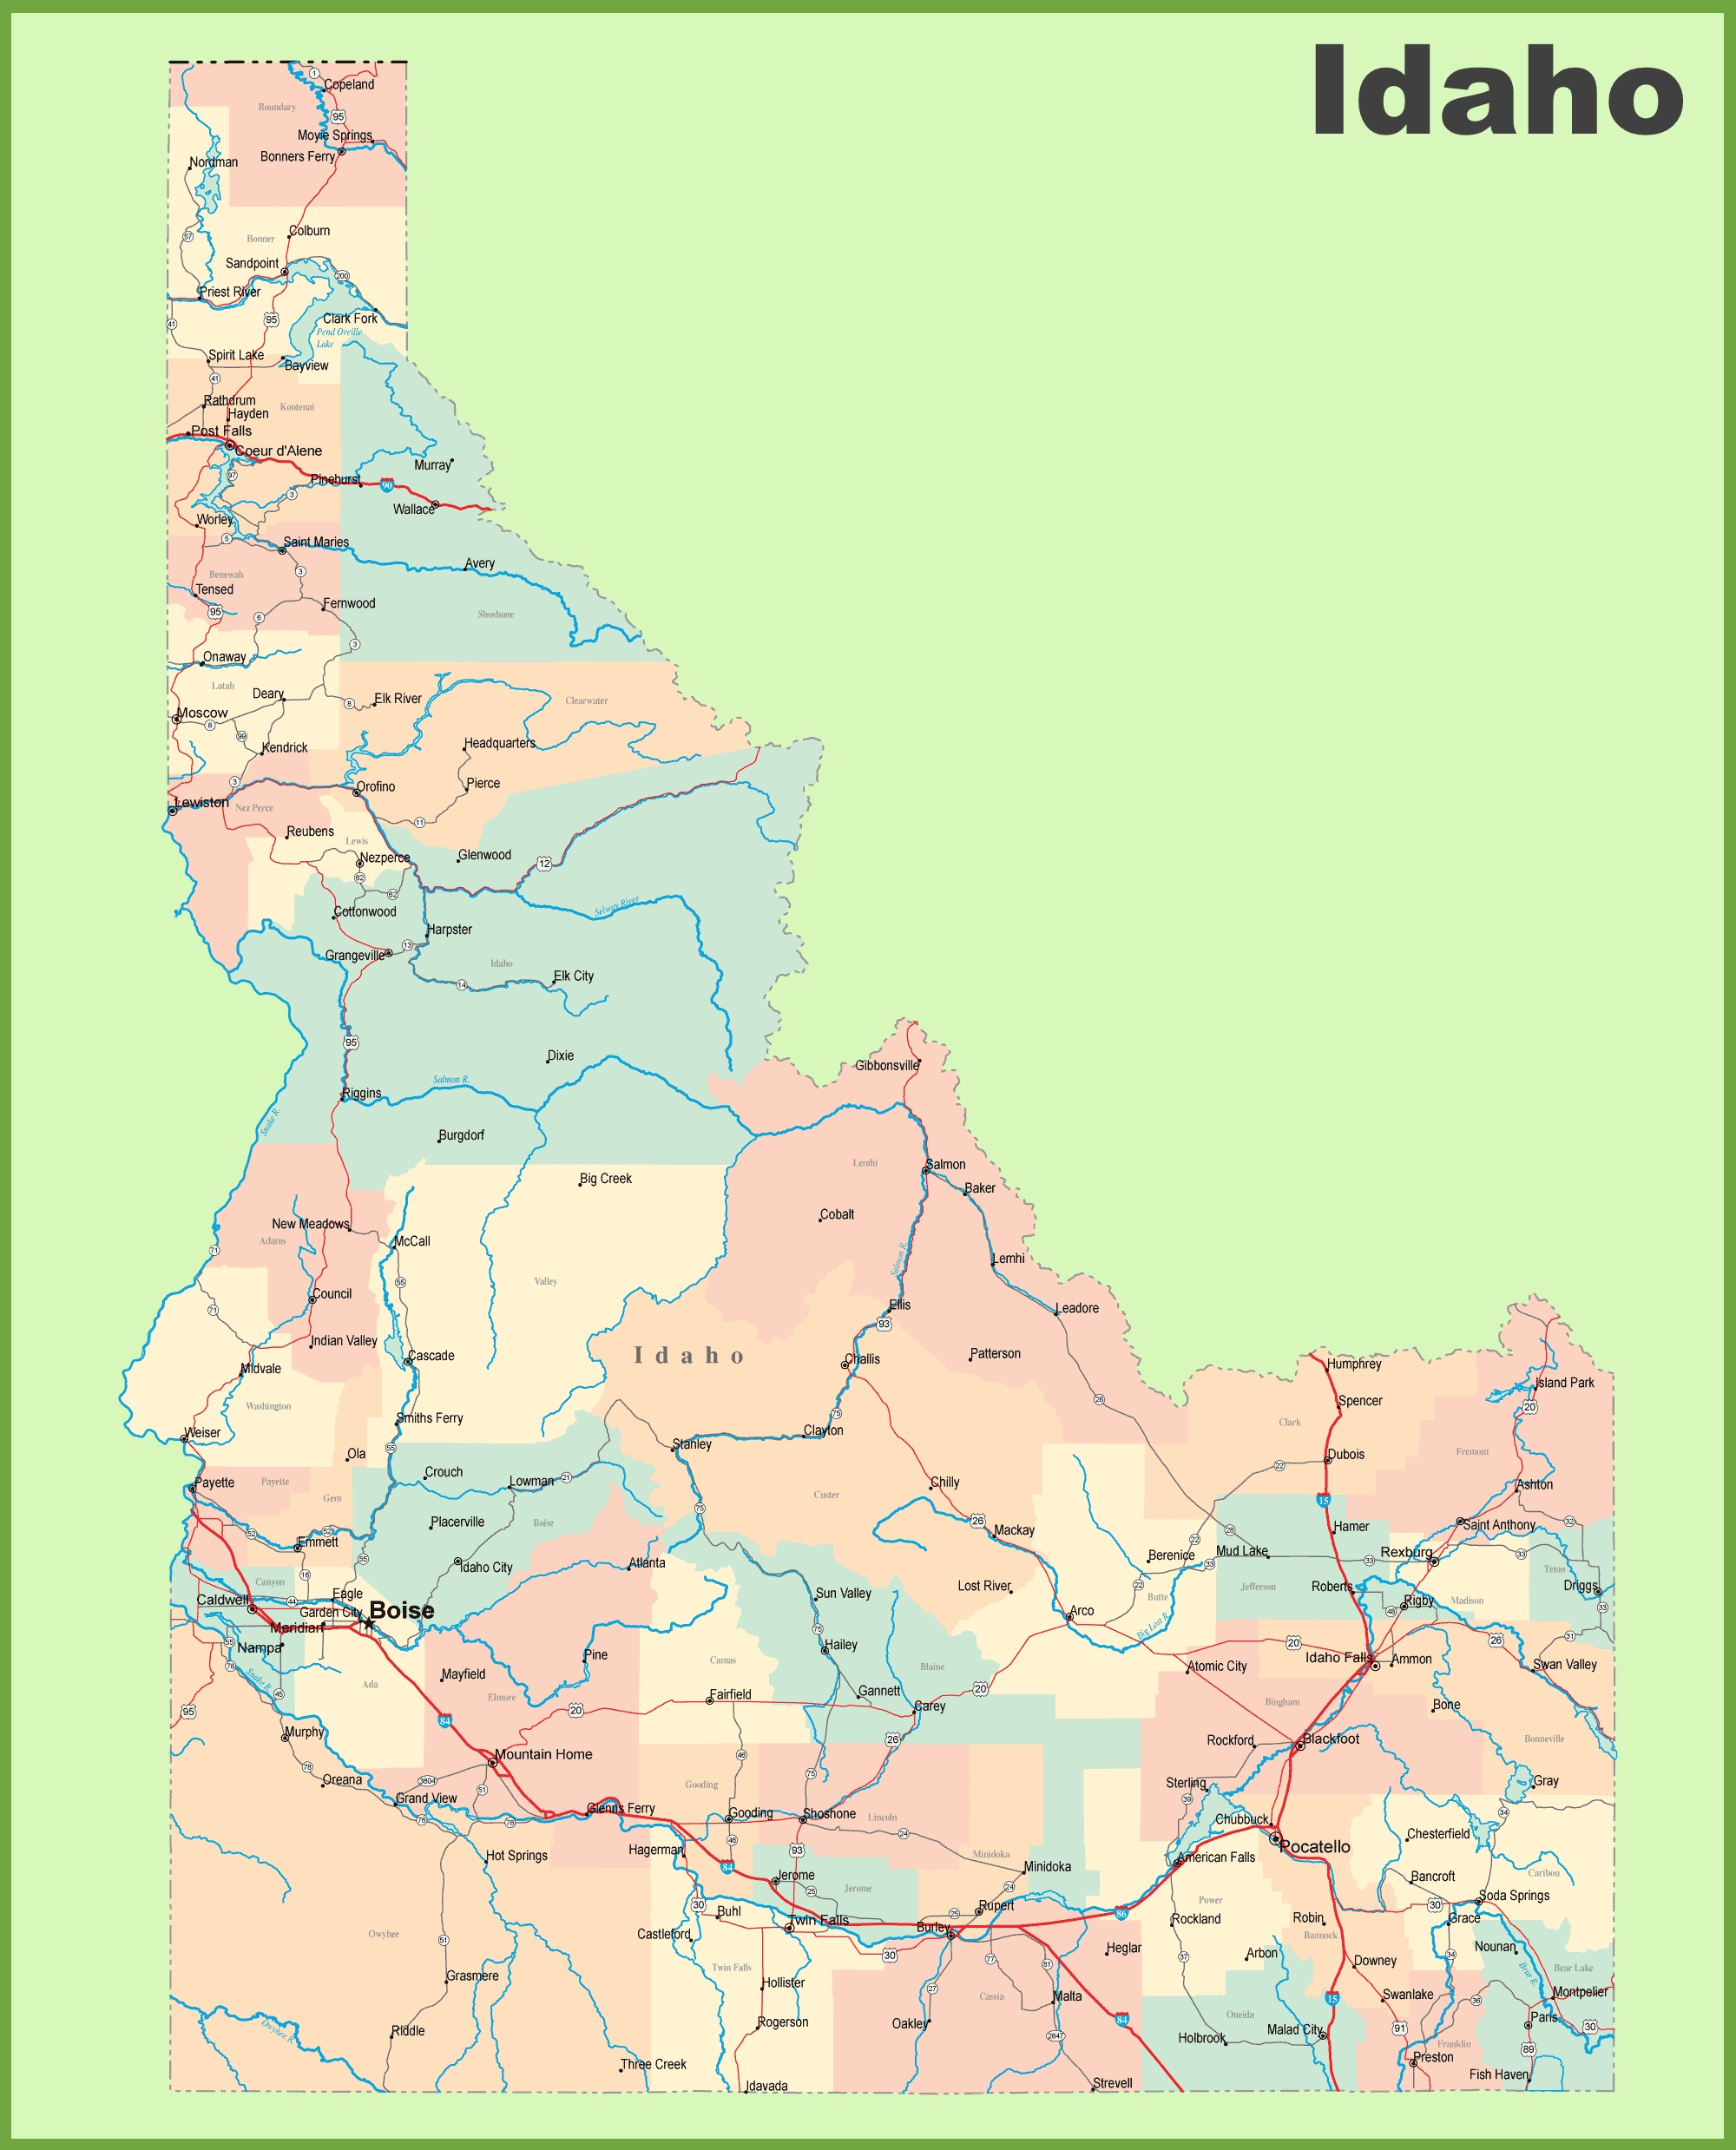 Worksheet. Road map of Idaho with cities and towns